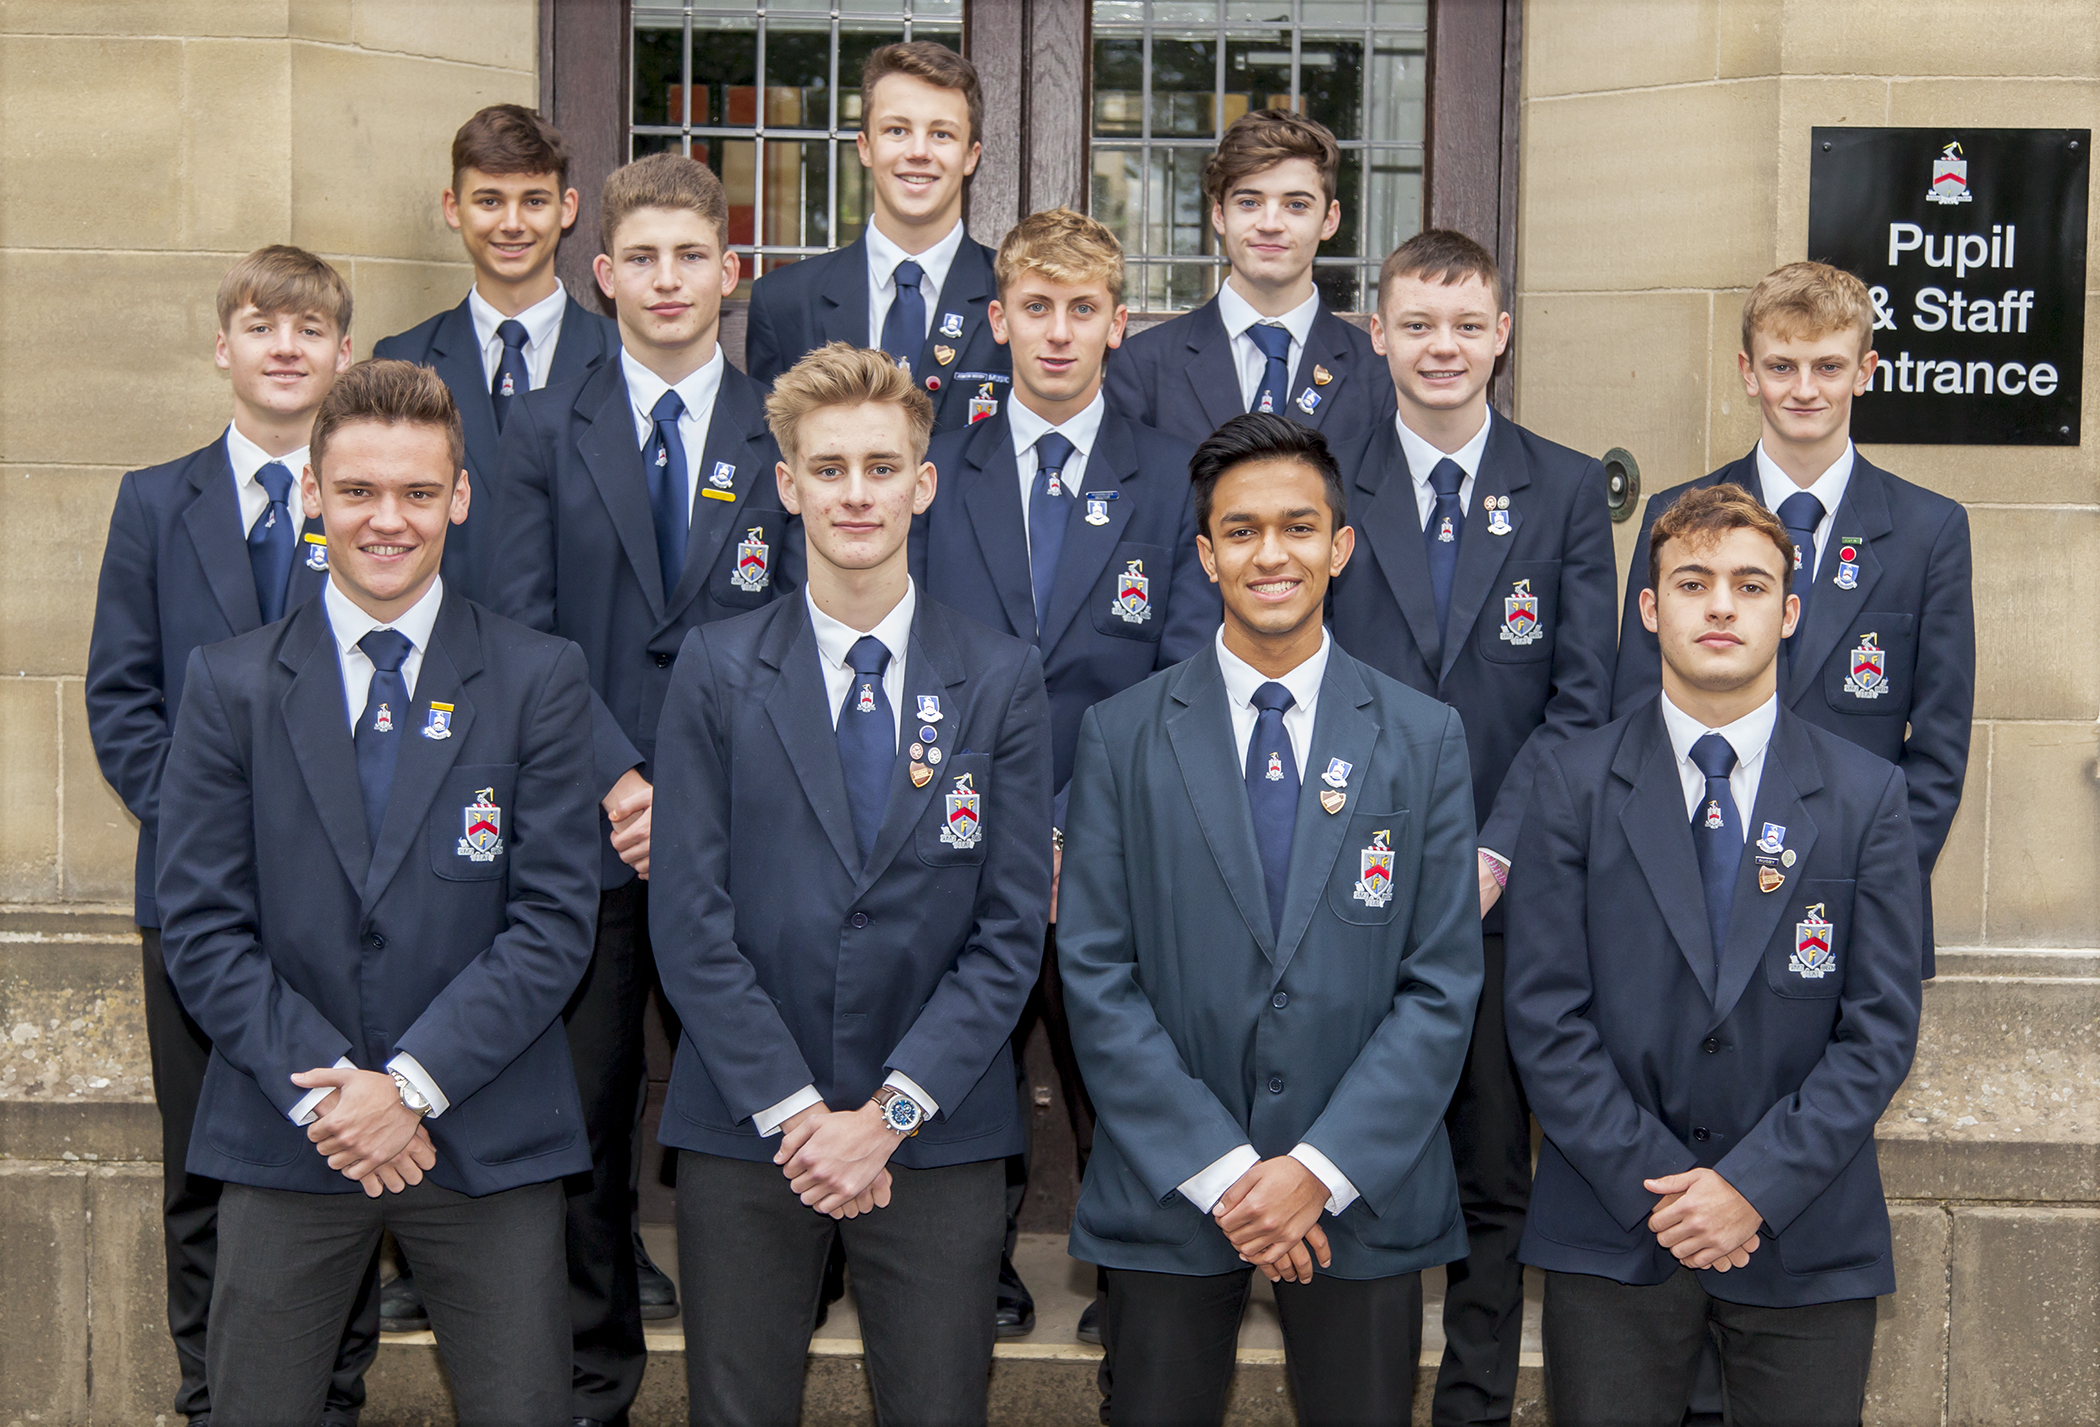 Ermysted Grammar School's prefect team